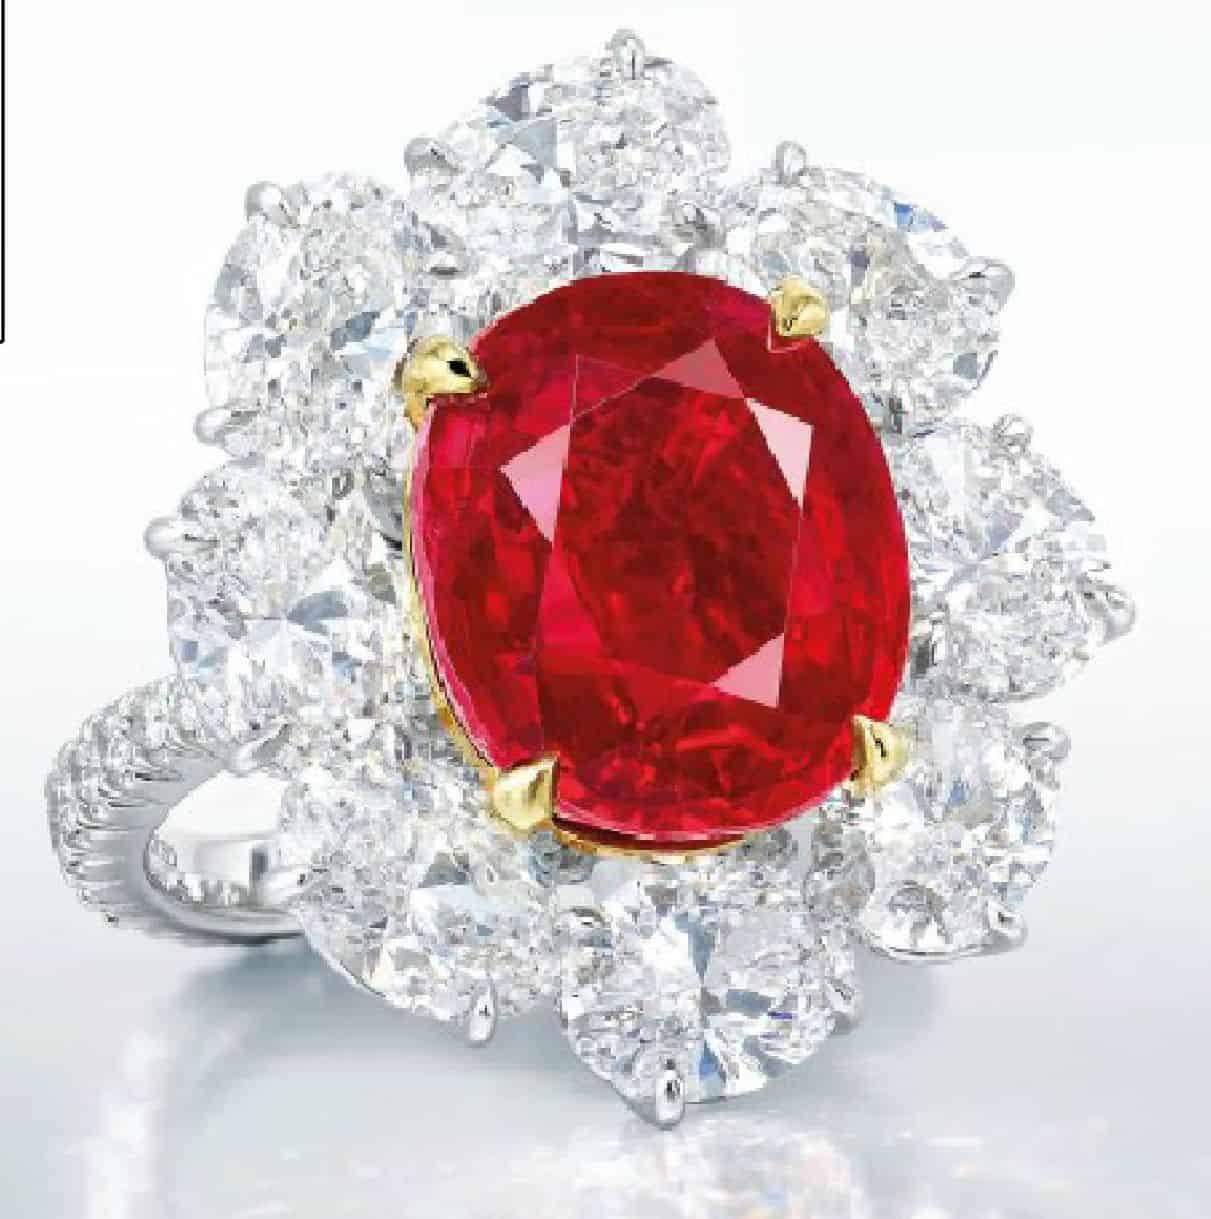 LOT 2087 - A SUPERB RUBY AND DIAMOND RING, BY FAIDEE